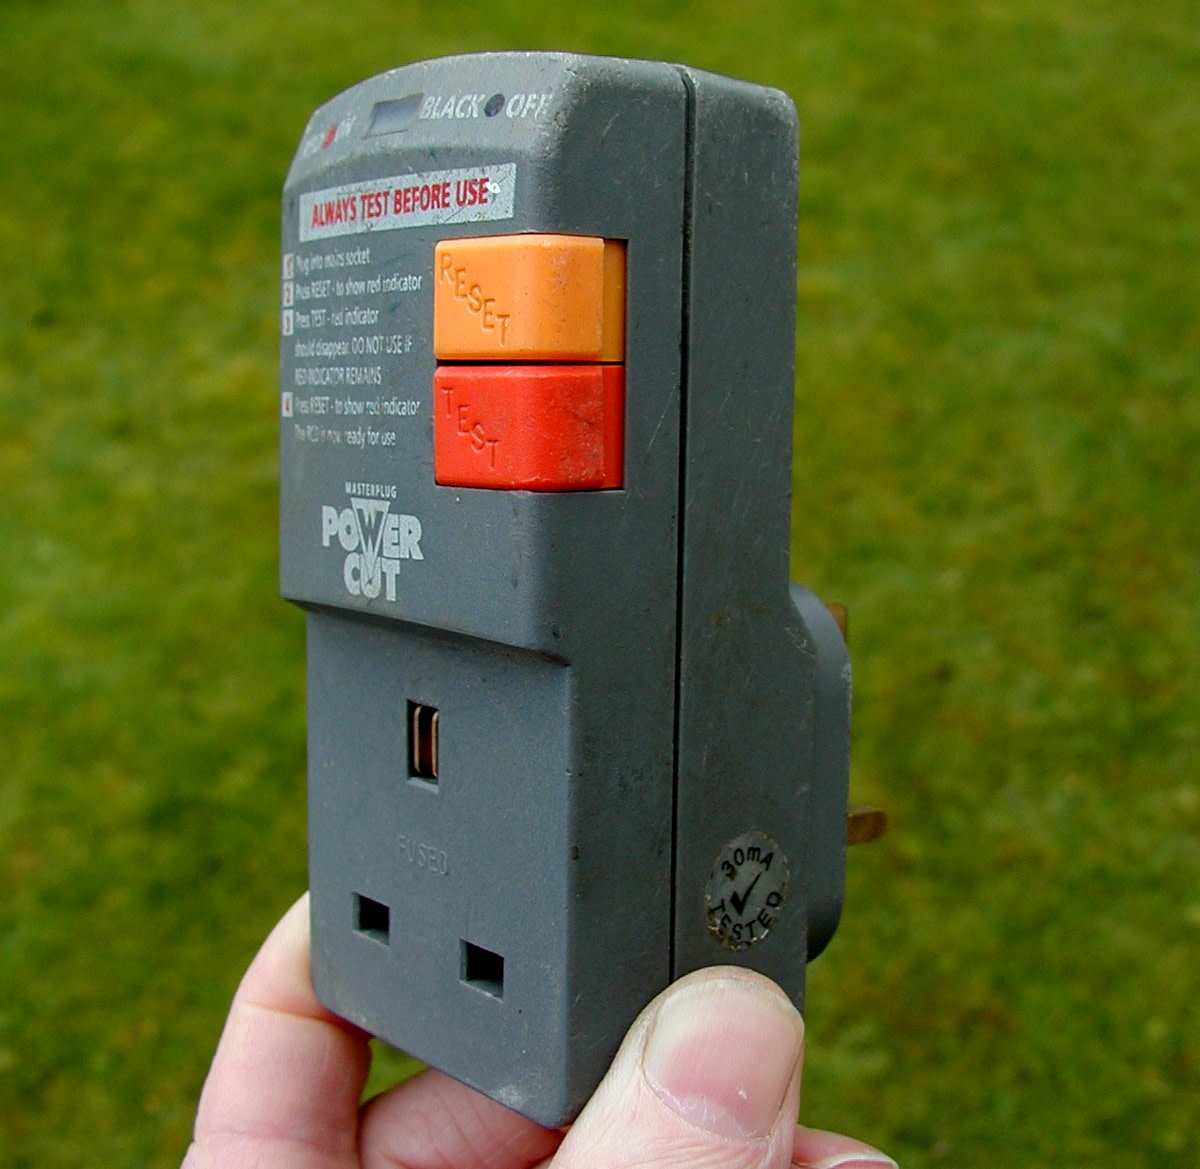 Electrical Safety in the Home and Garden - Using a GFCI to Prevent Shock